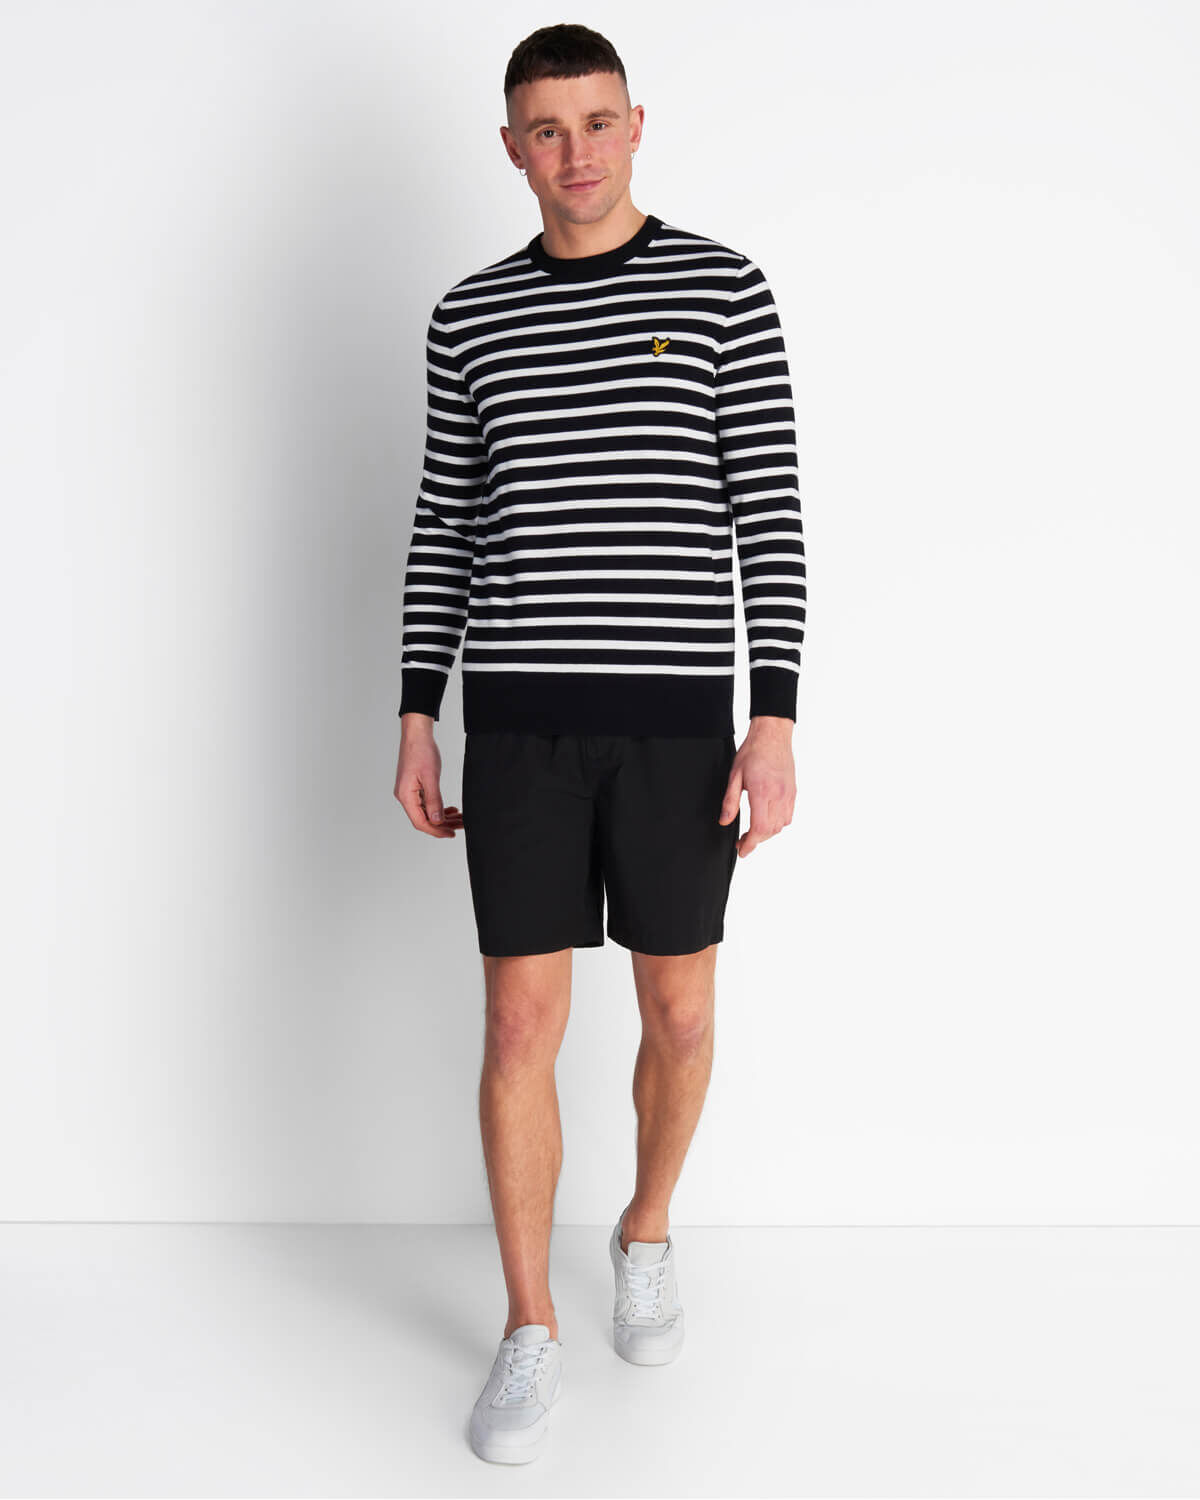 Lyle-and-Scott-Men-Breton-Stripe-Jumper-Cotton thumbnail 7